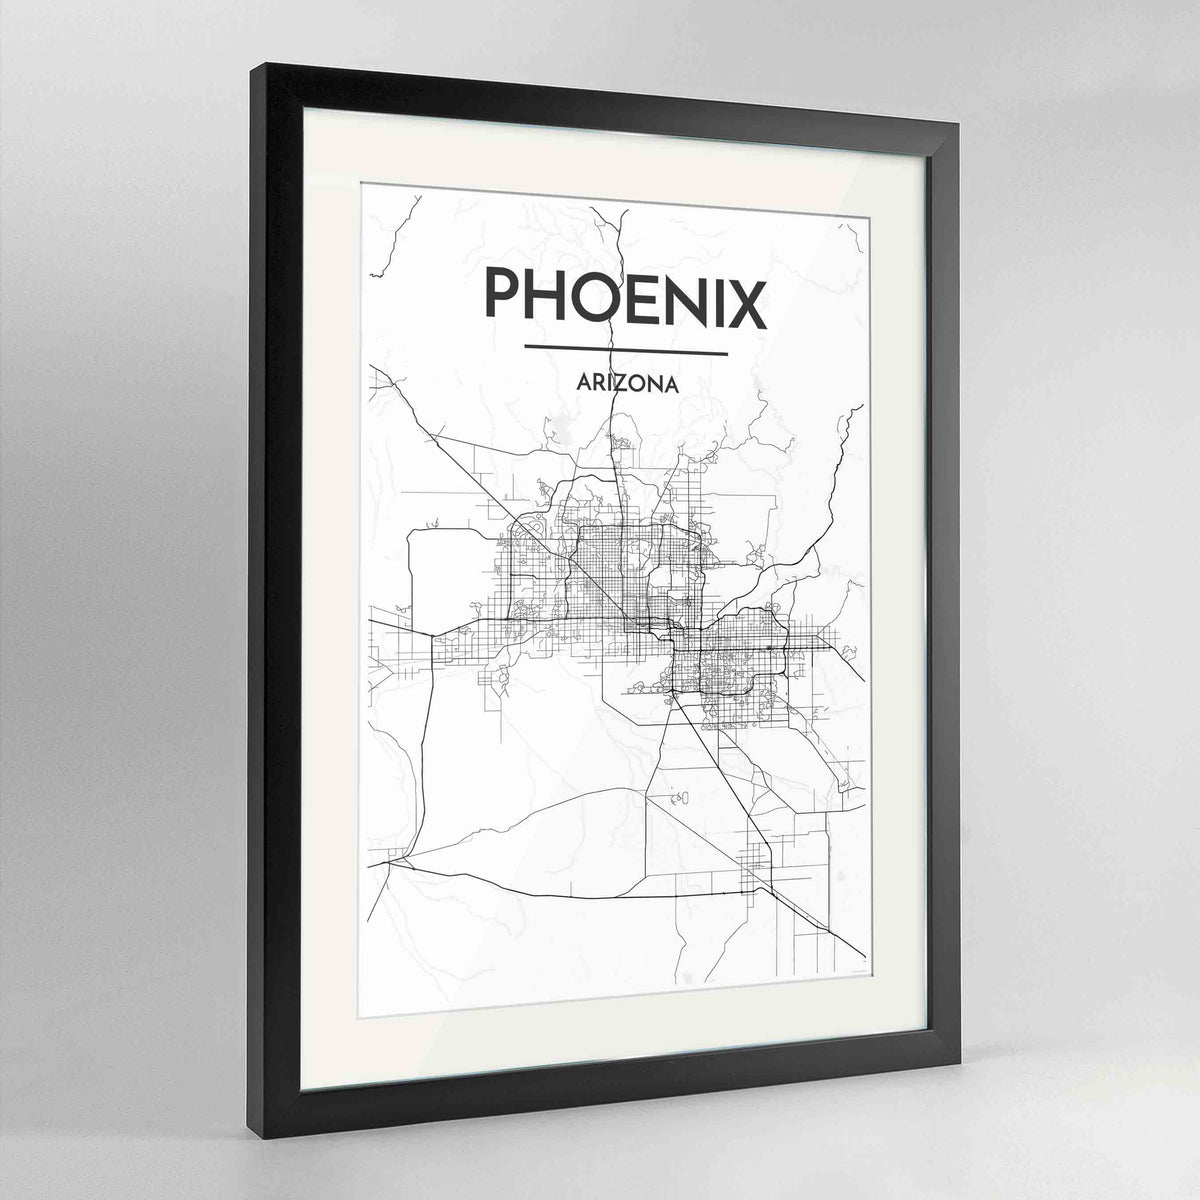 "Framed Phoenix Map Art Print 24x36"" Contemporary Black frame Point Two Design Group"